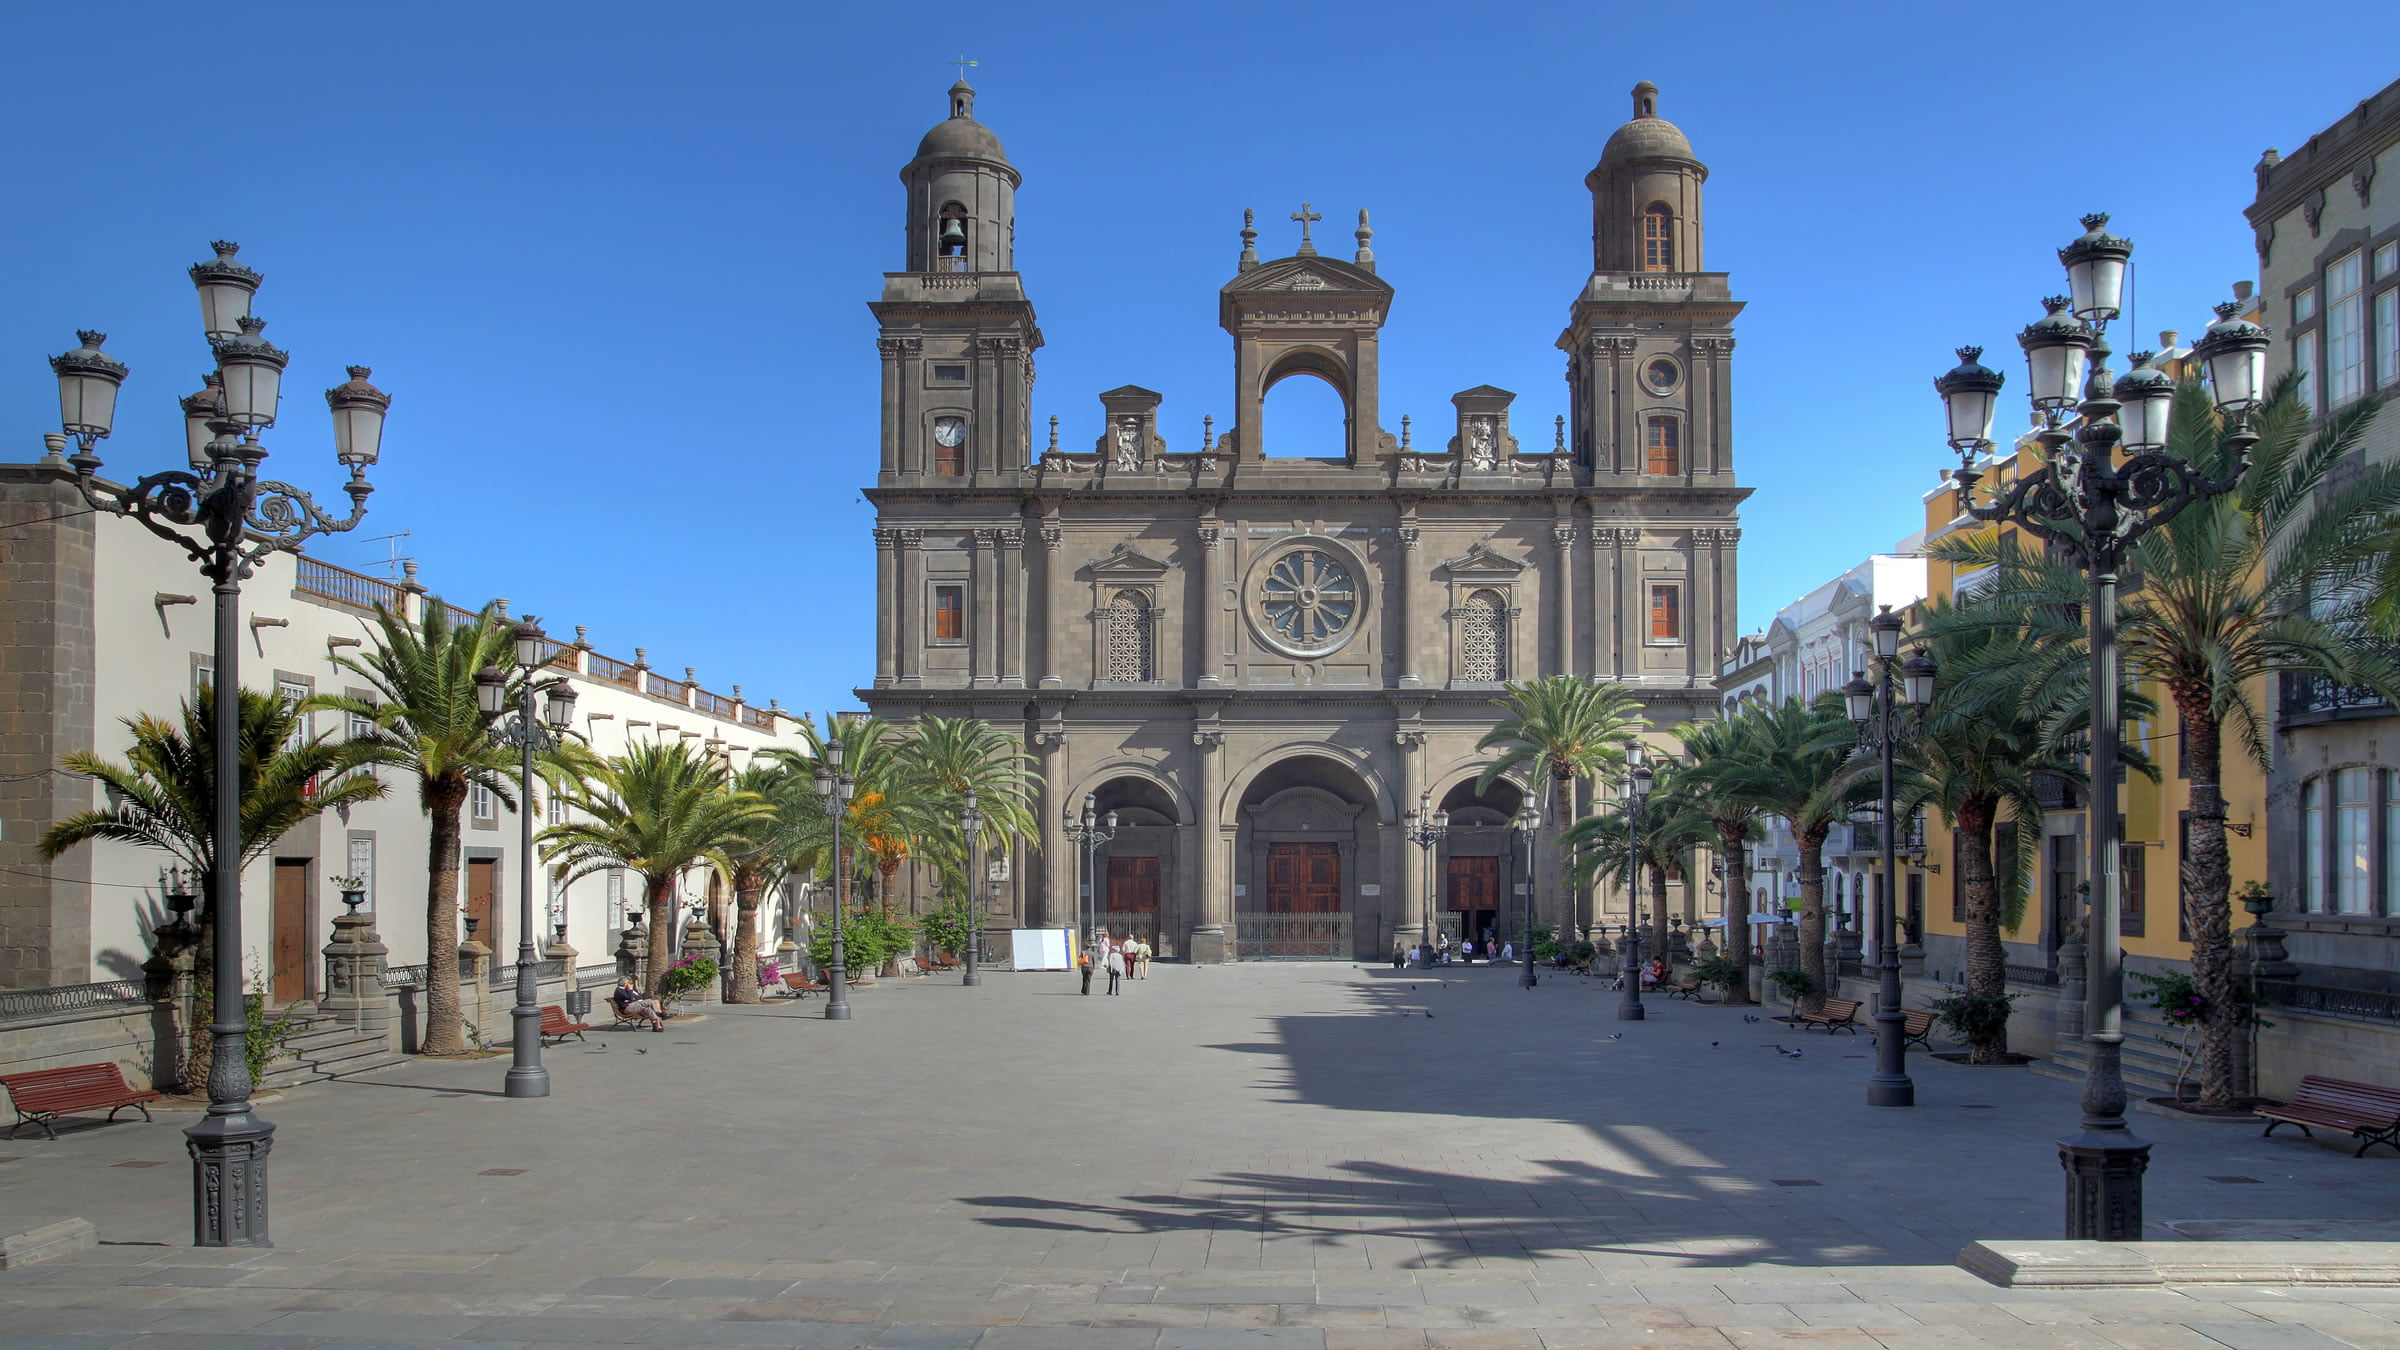 las palmas de gran canaria guys Where do hipsters congregate in las palmas de gran canaria well, in the places listed by our resident expert get hip to them here.